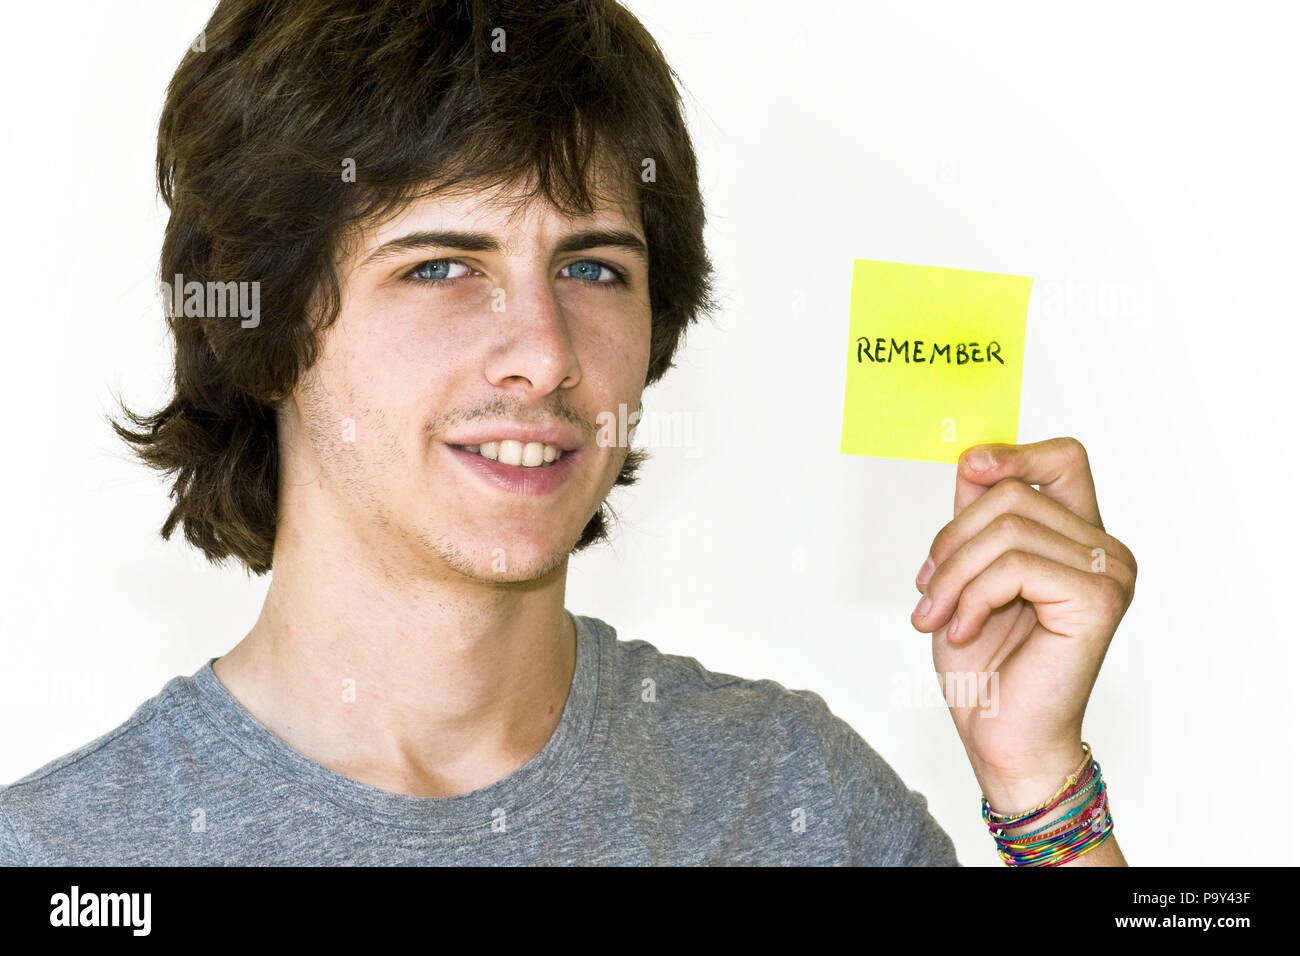 young people,message,remember Stock Photo